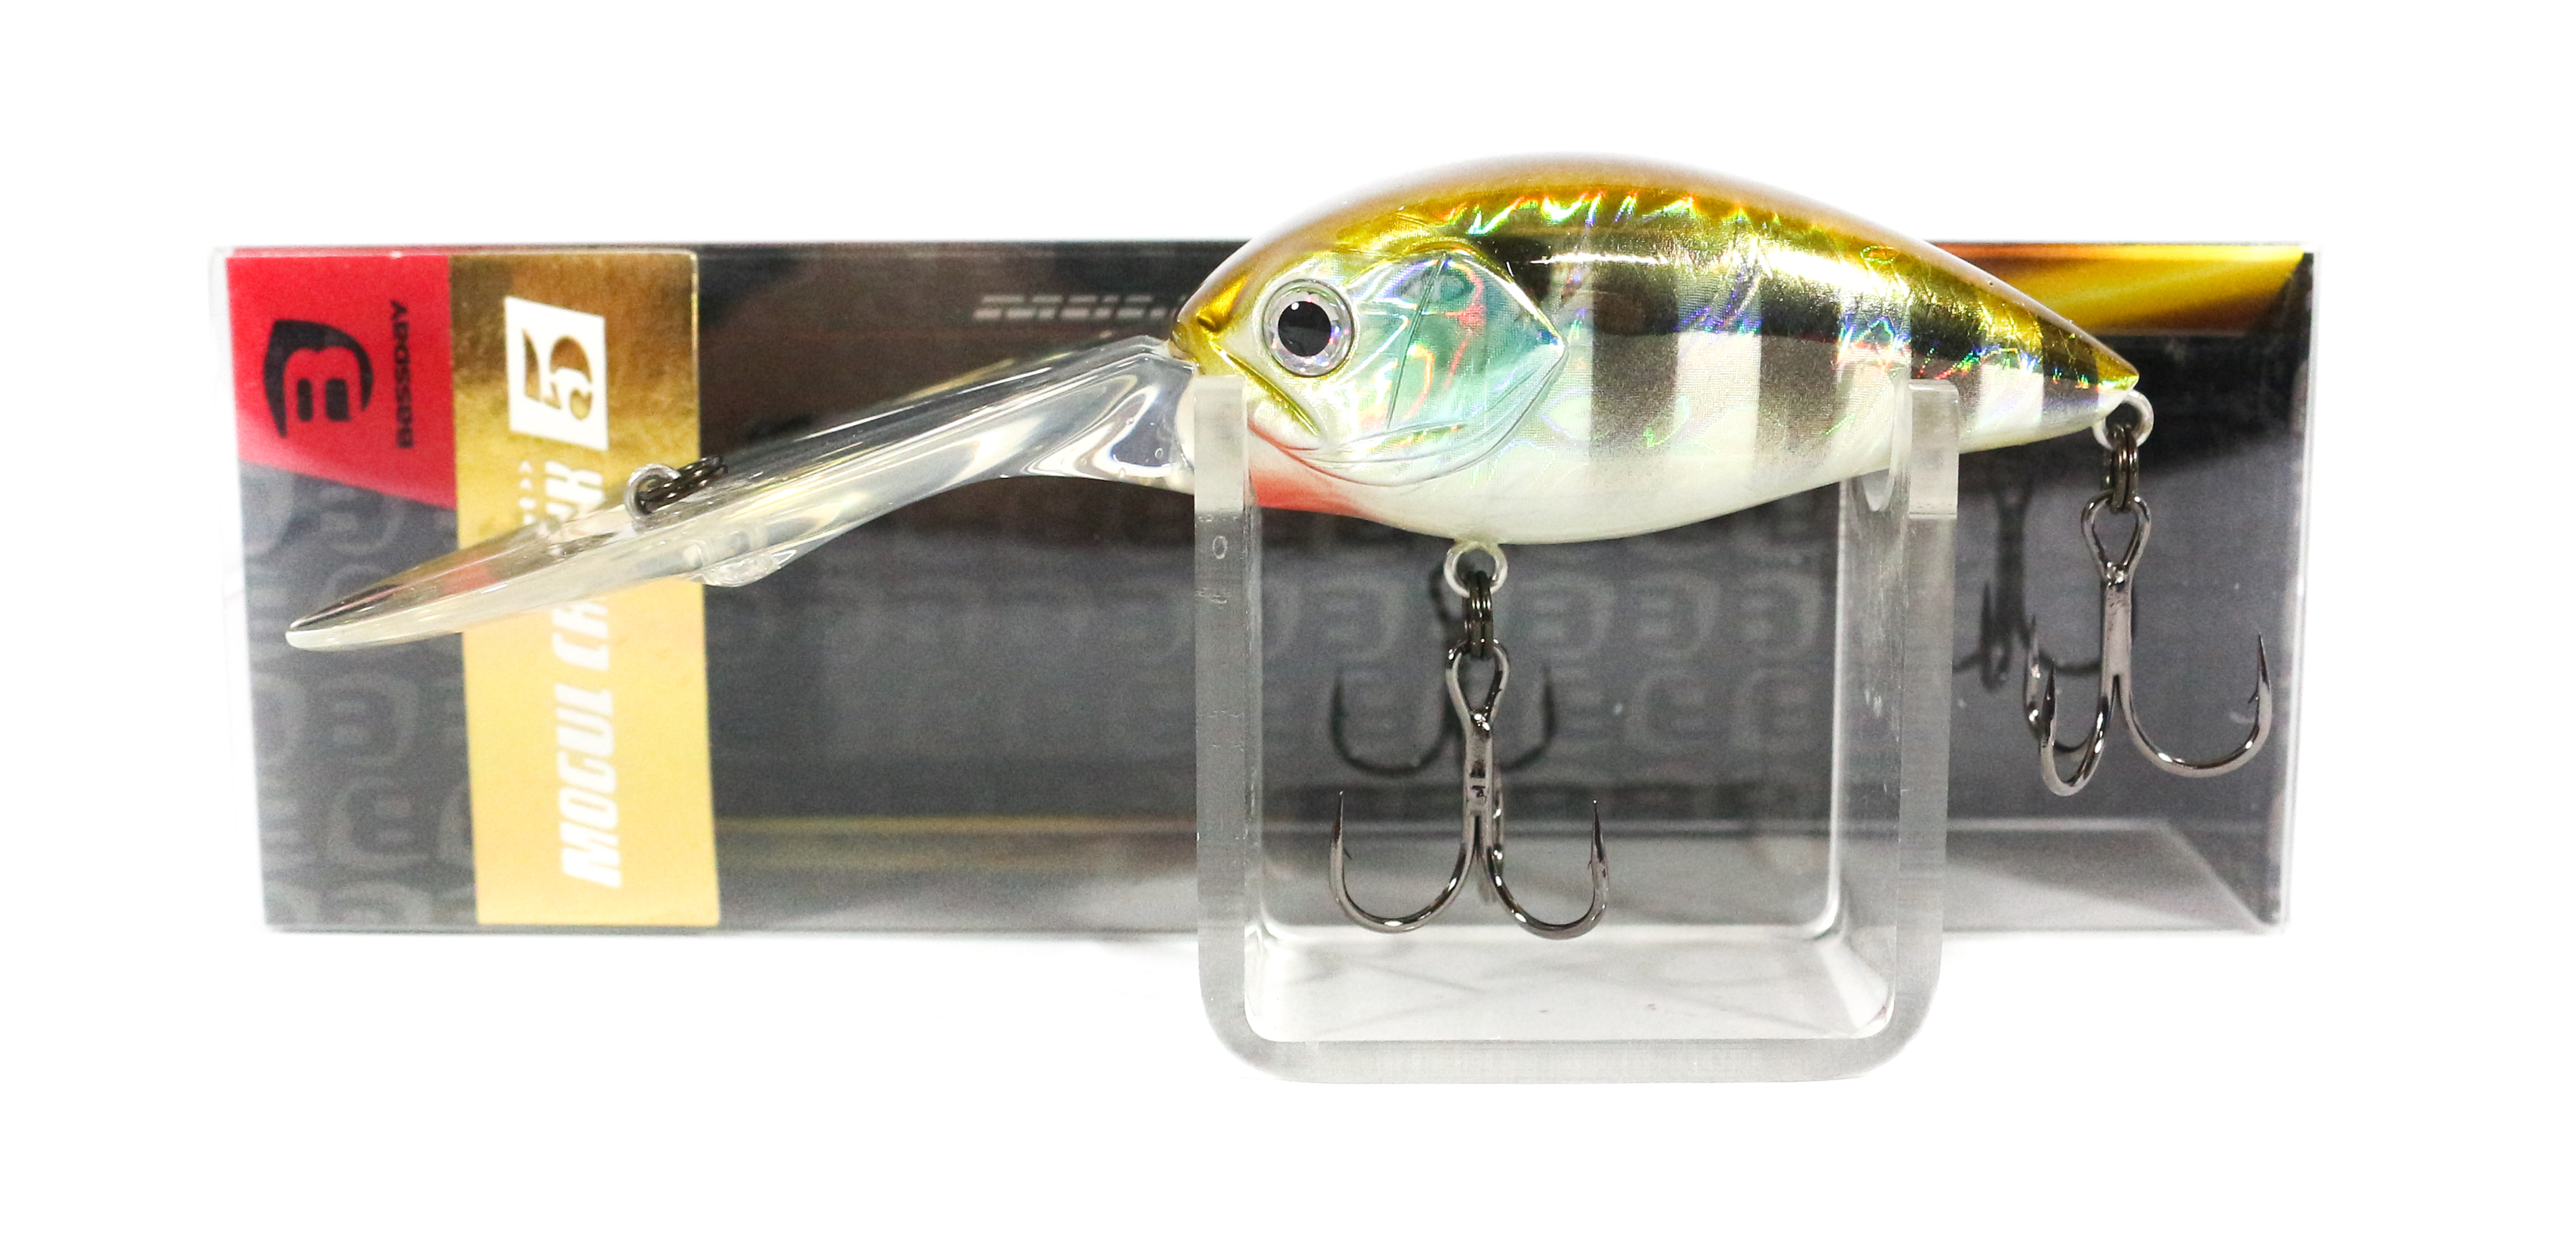 Bassday Mogul Crank Target 5 63 mm Floating Lure 21 grams SB-254 (5066)